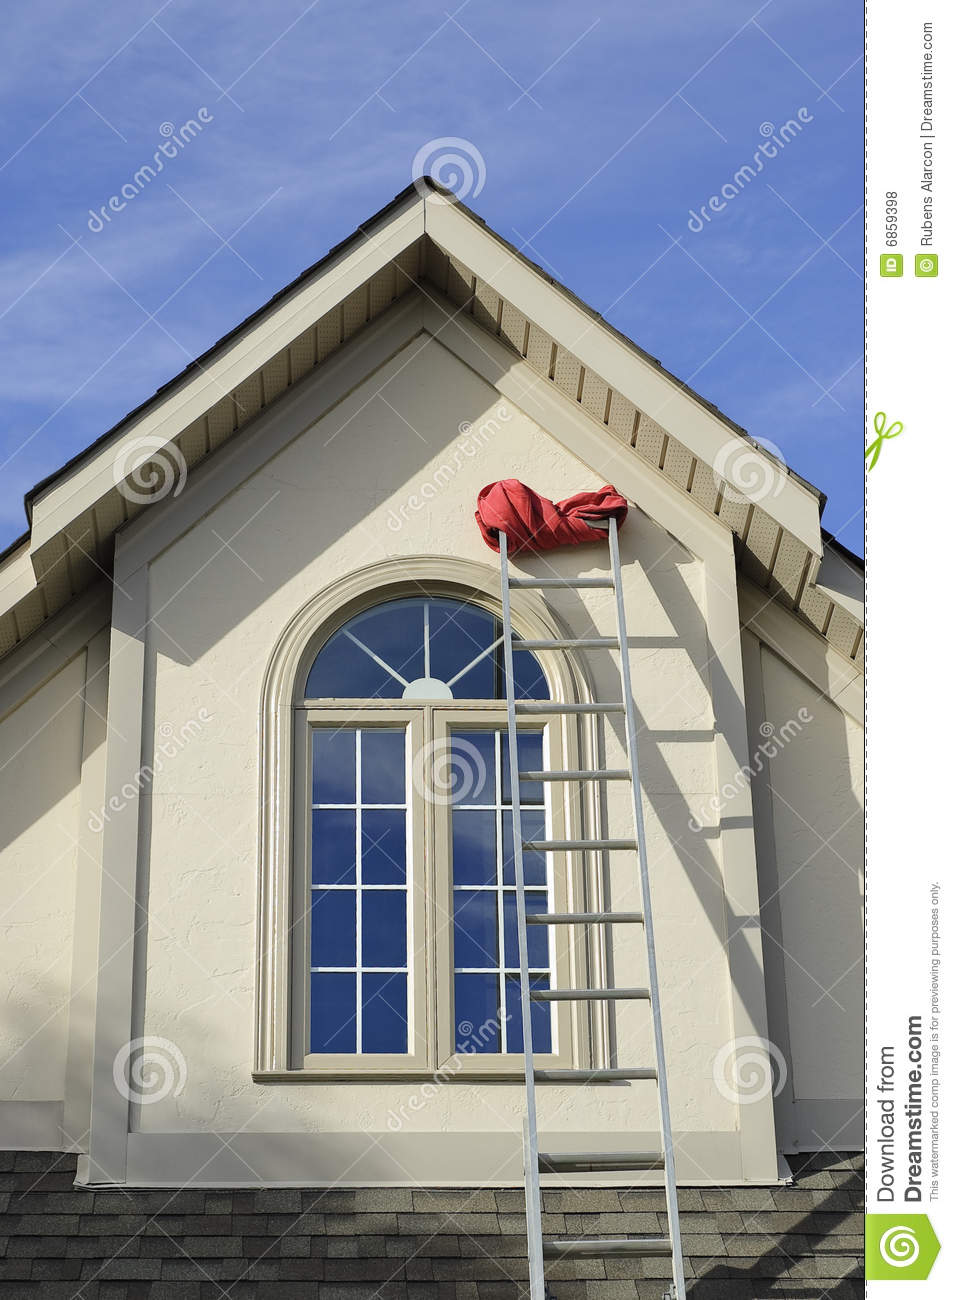 ... Window And Extension Ladder Royalty Free Stock Photos - Image: 6859398